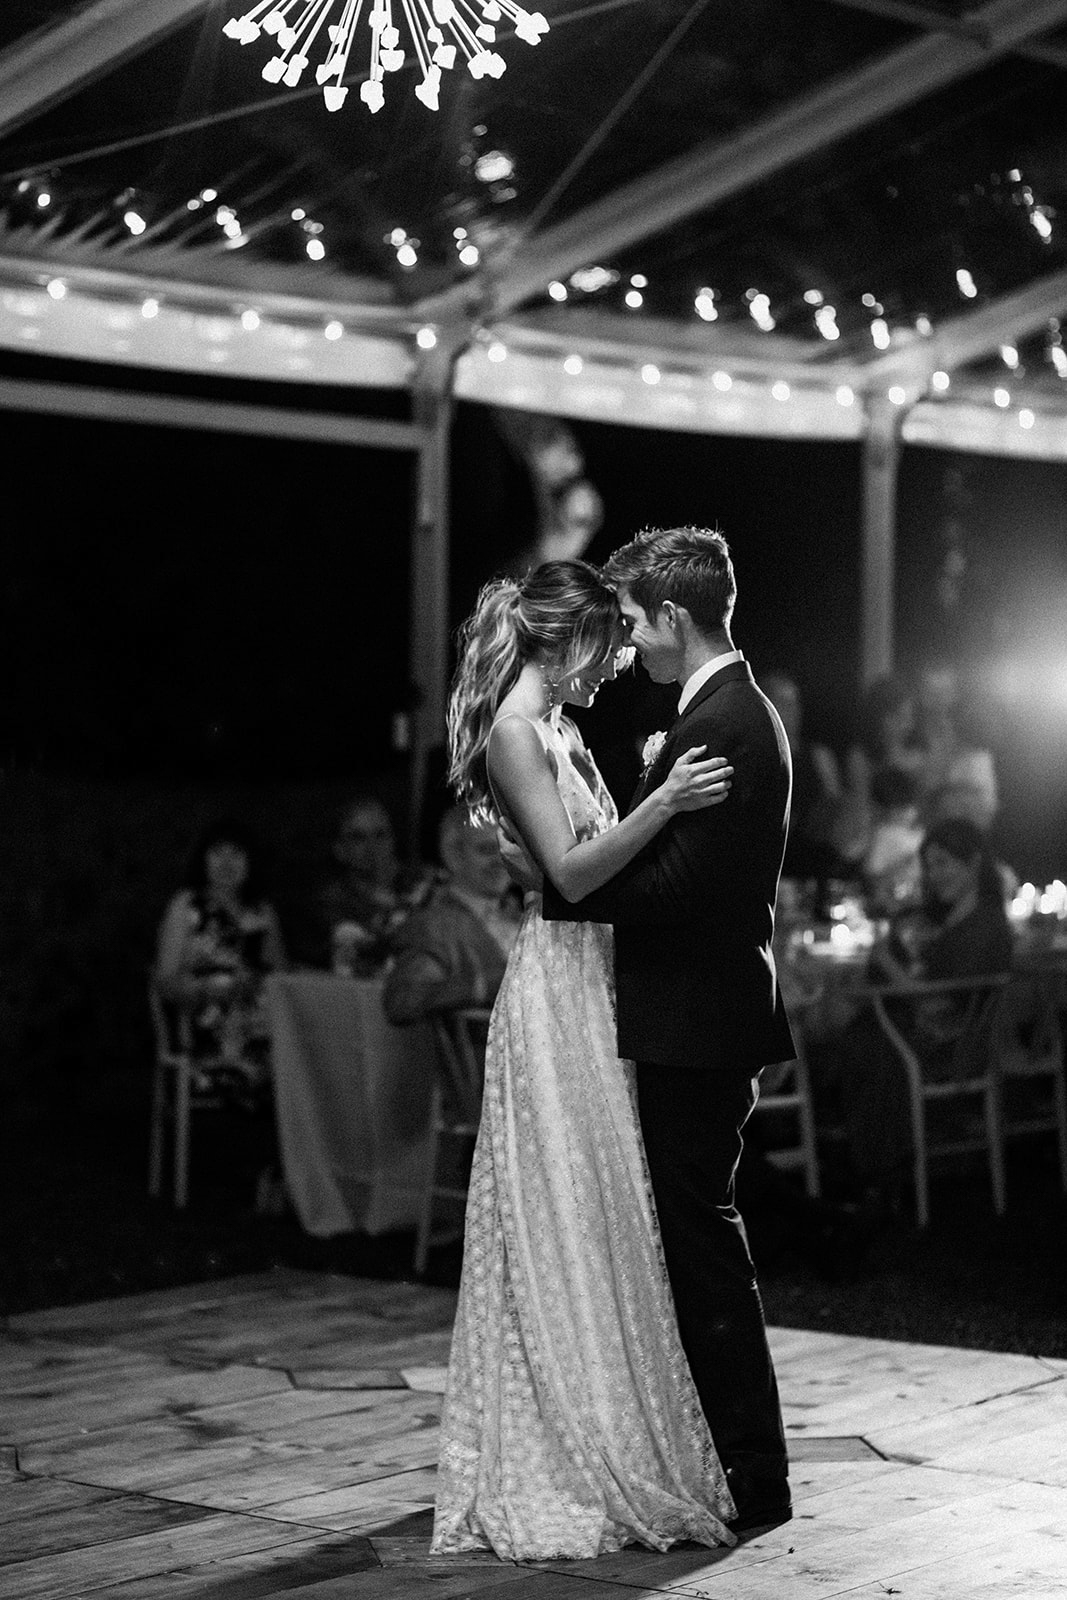 couple during first dance on wooden floor